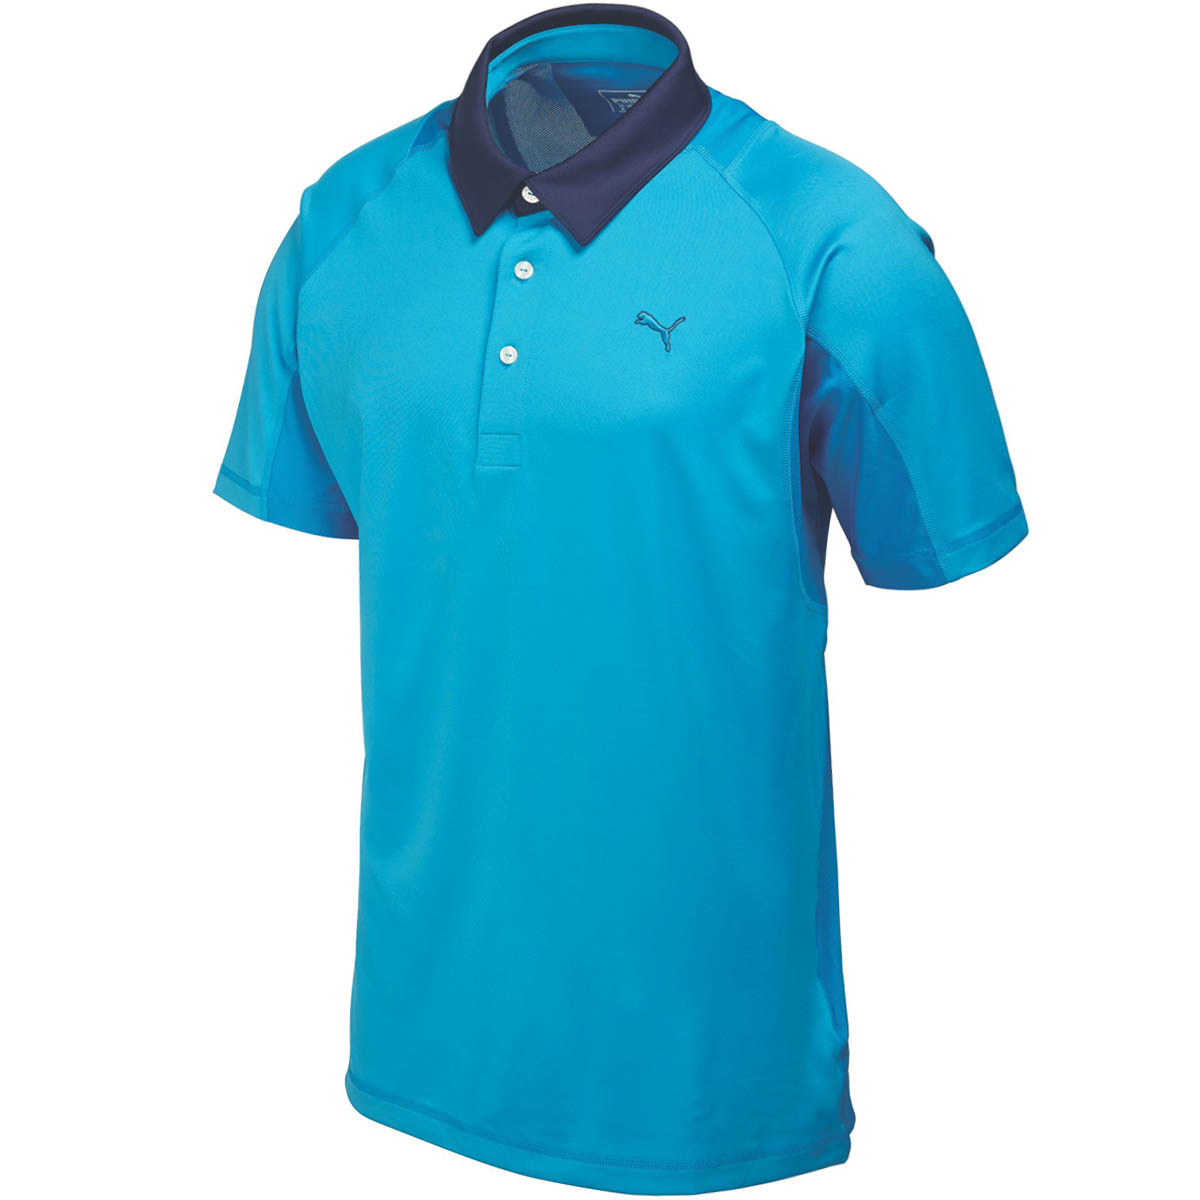 Puma golf mens titan tour golf polo shirt 568252 coolcell for Mens golf polo shirts